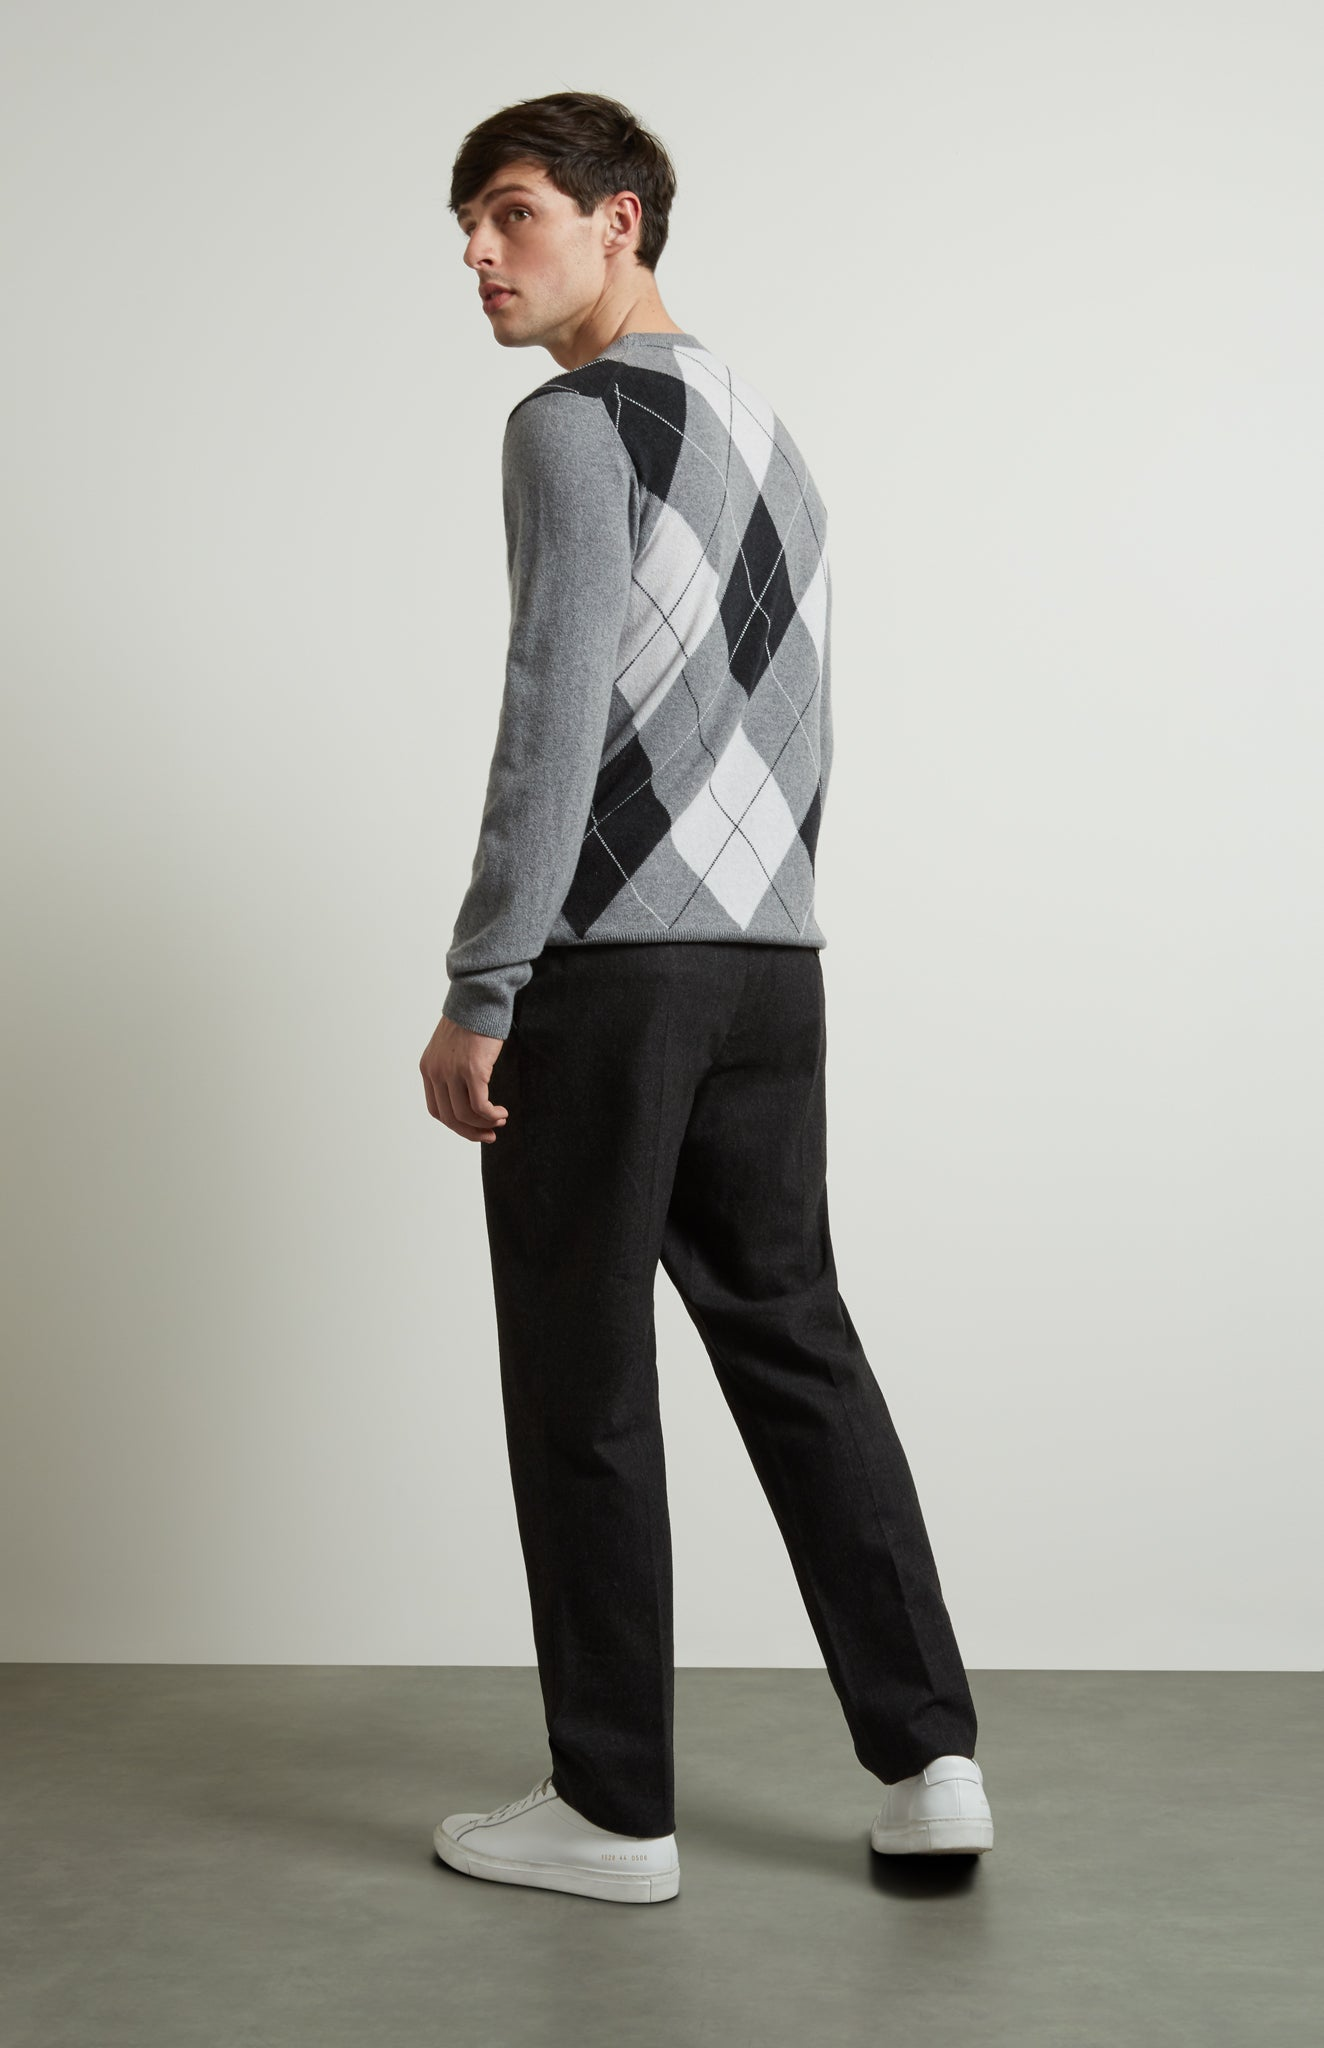 Round Neck Argyle Jumper In Flannel Grey/Charcoal